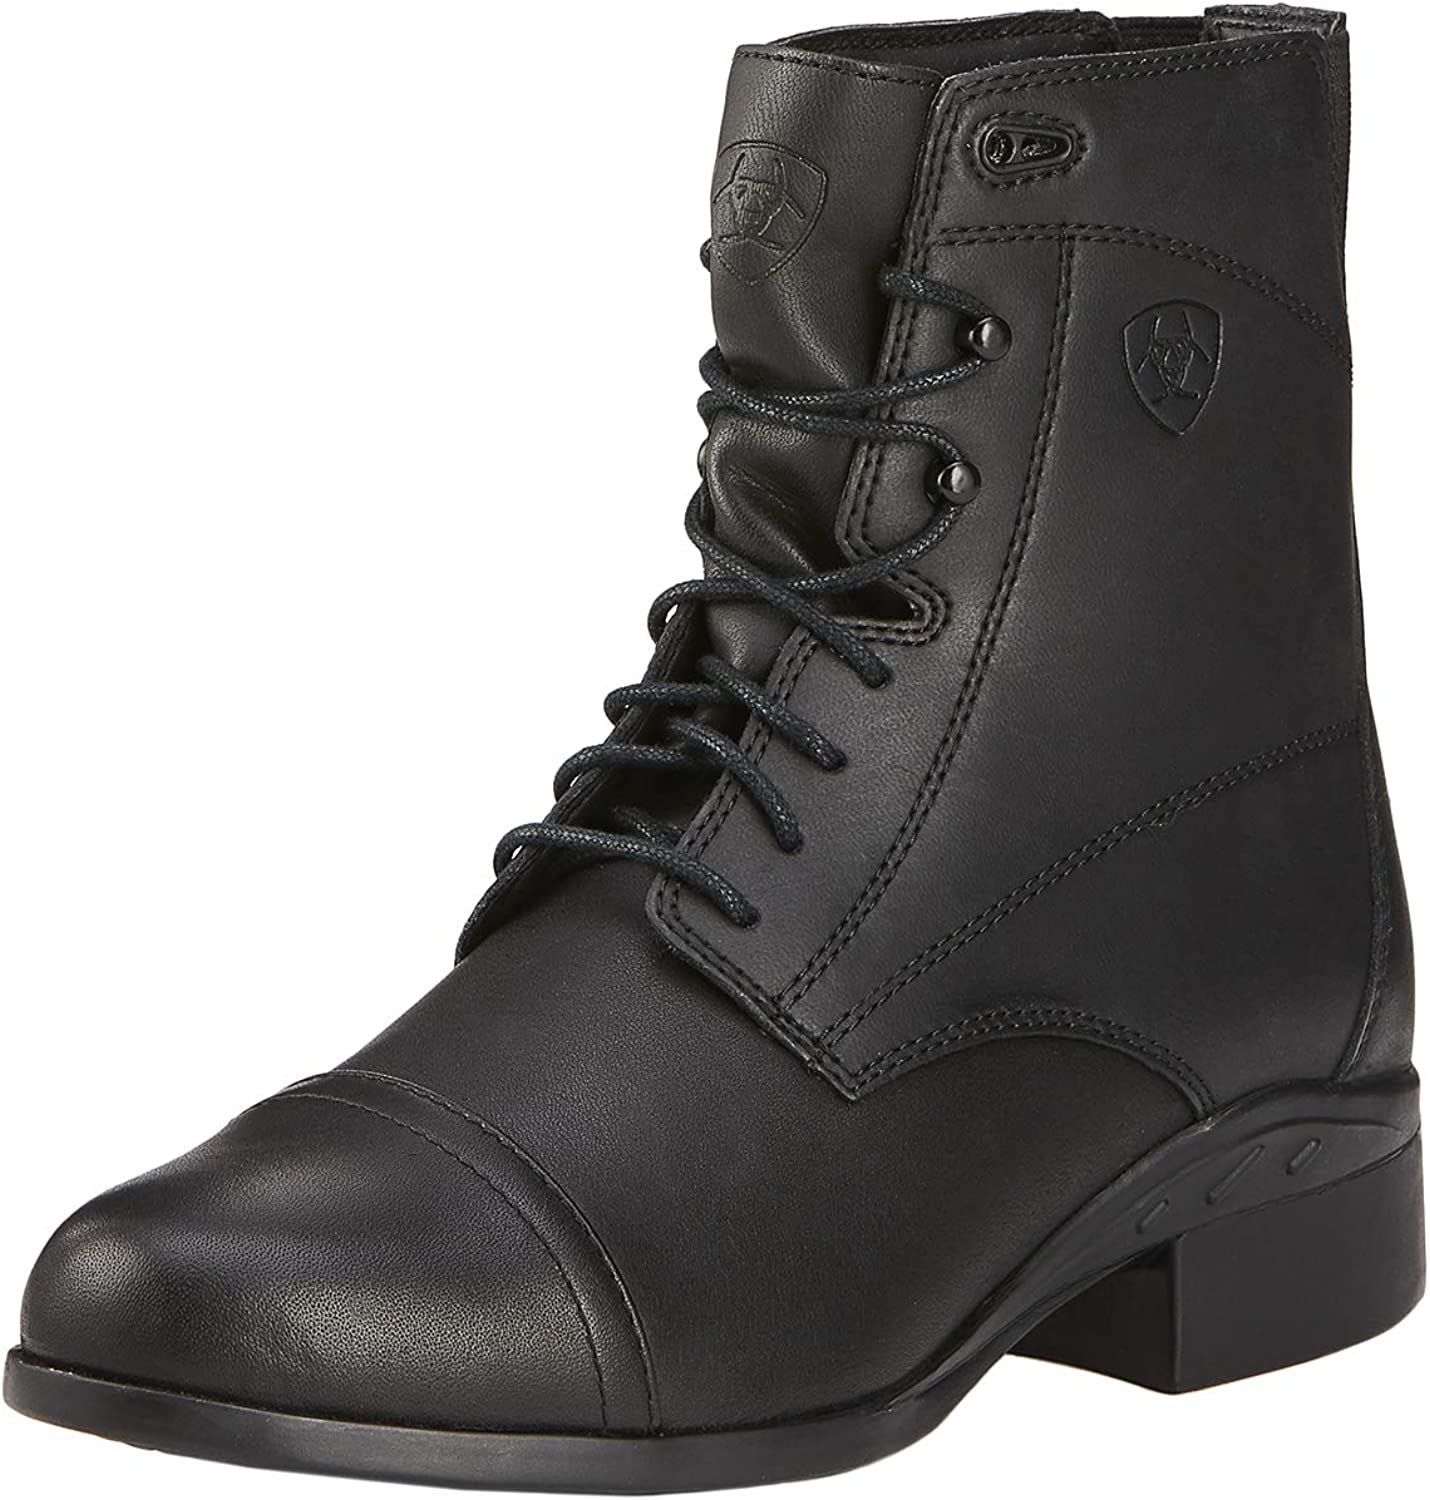 ARIAT Scout Paddock Boot - discount Cheap mail order specialty store Women's Boots Riding Leather